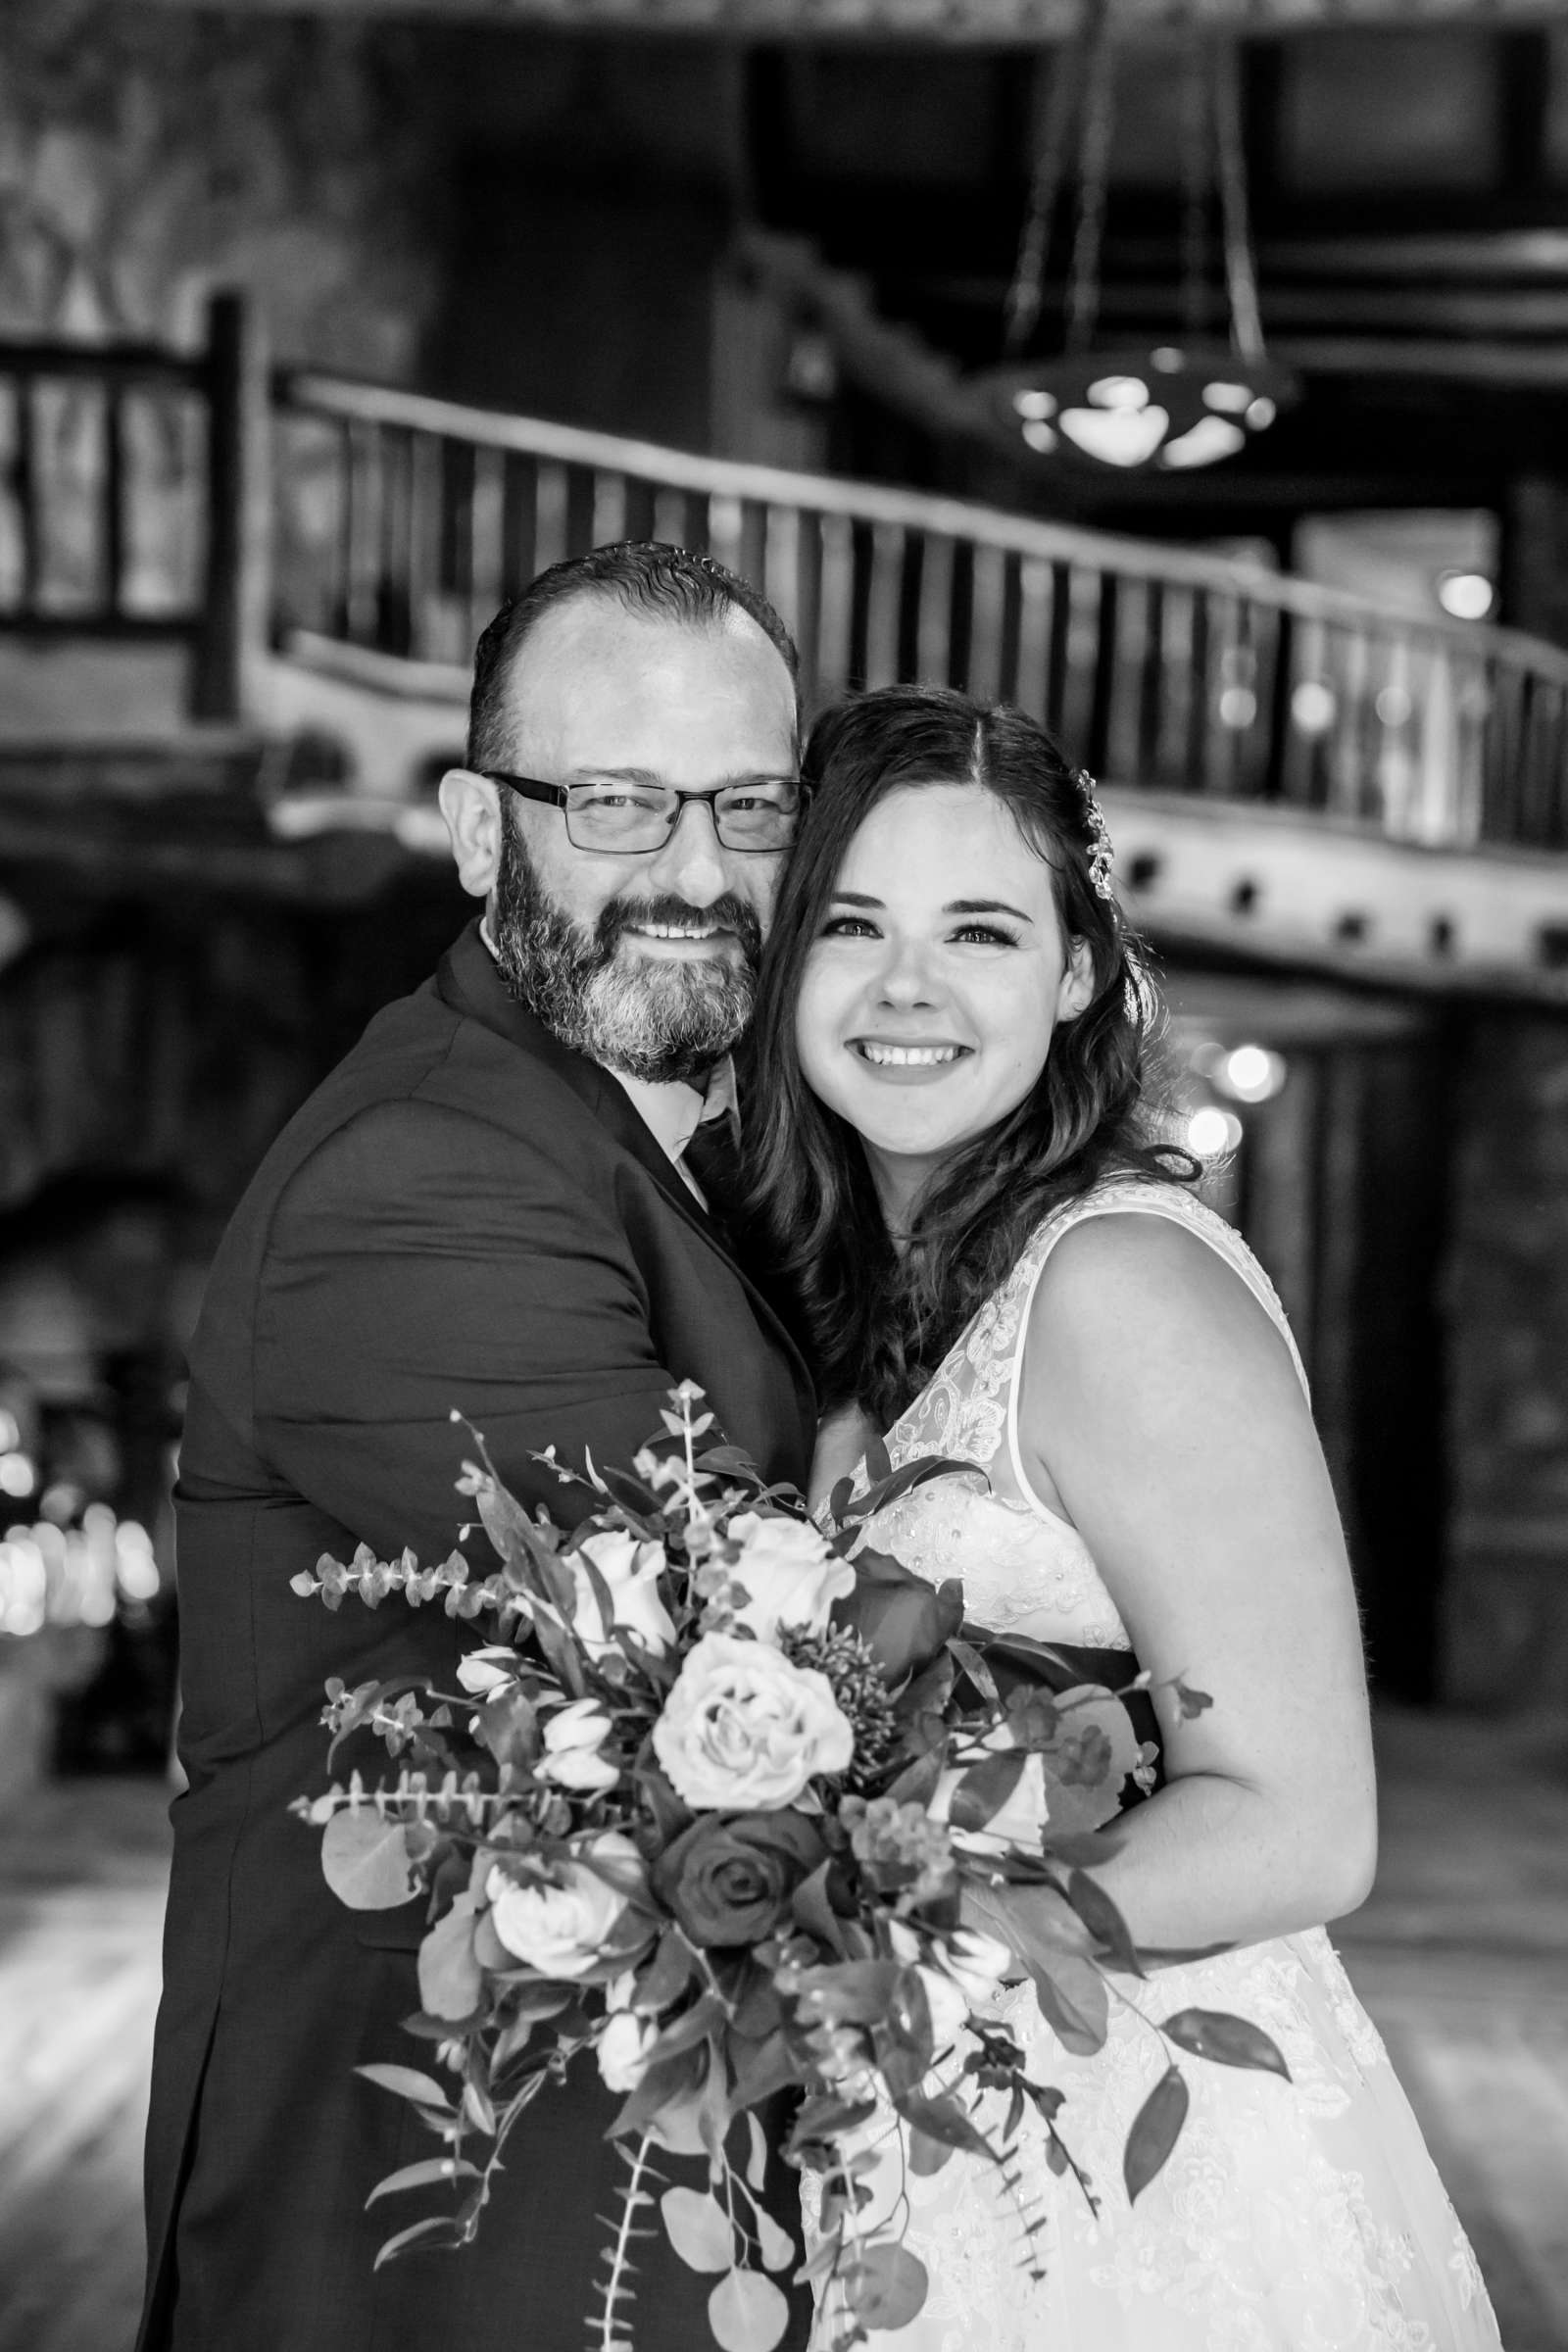 Mt Woodson Castle Wedding, Valerie and Ian Wedding Photo #79 by True Photography